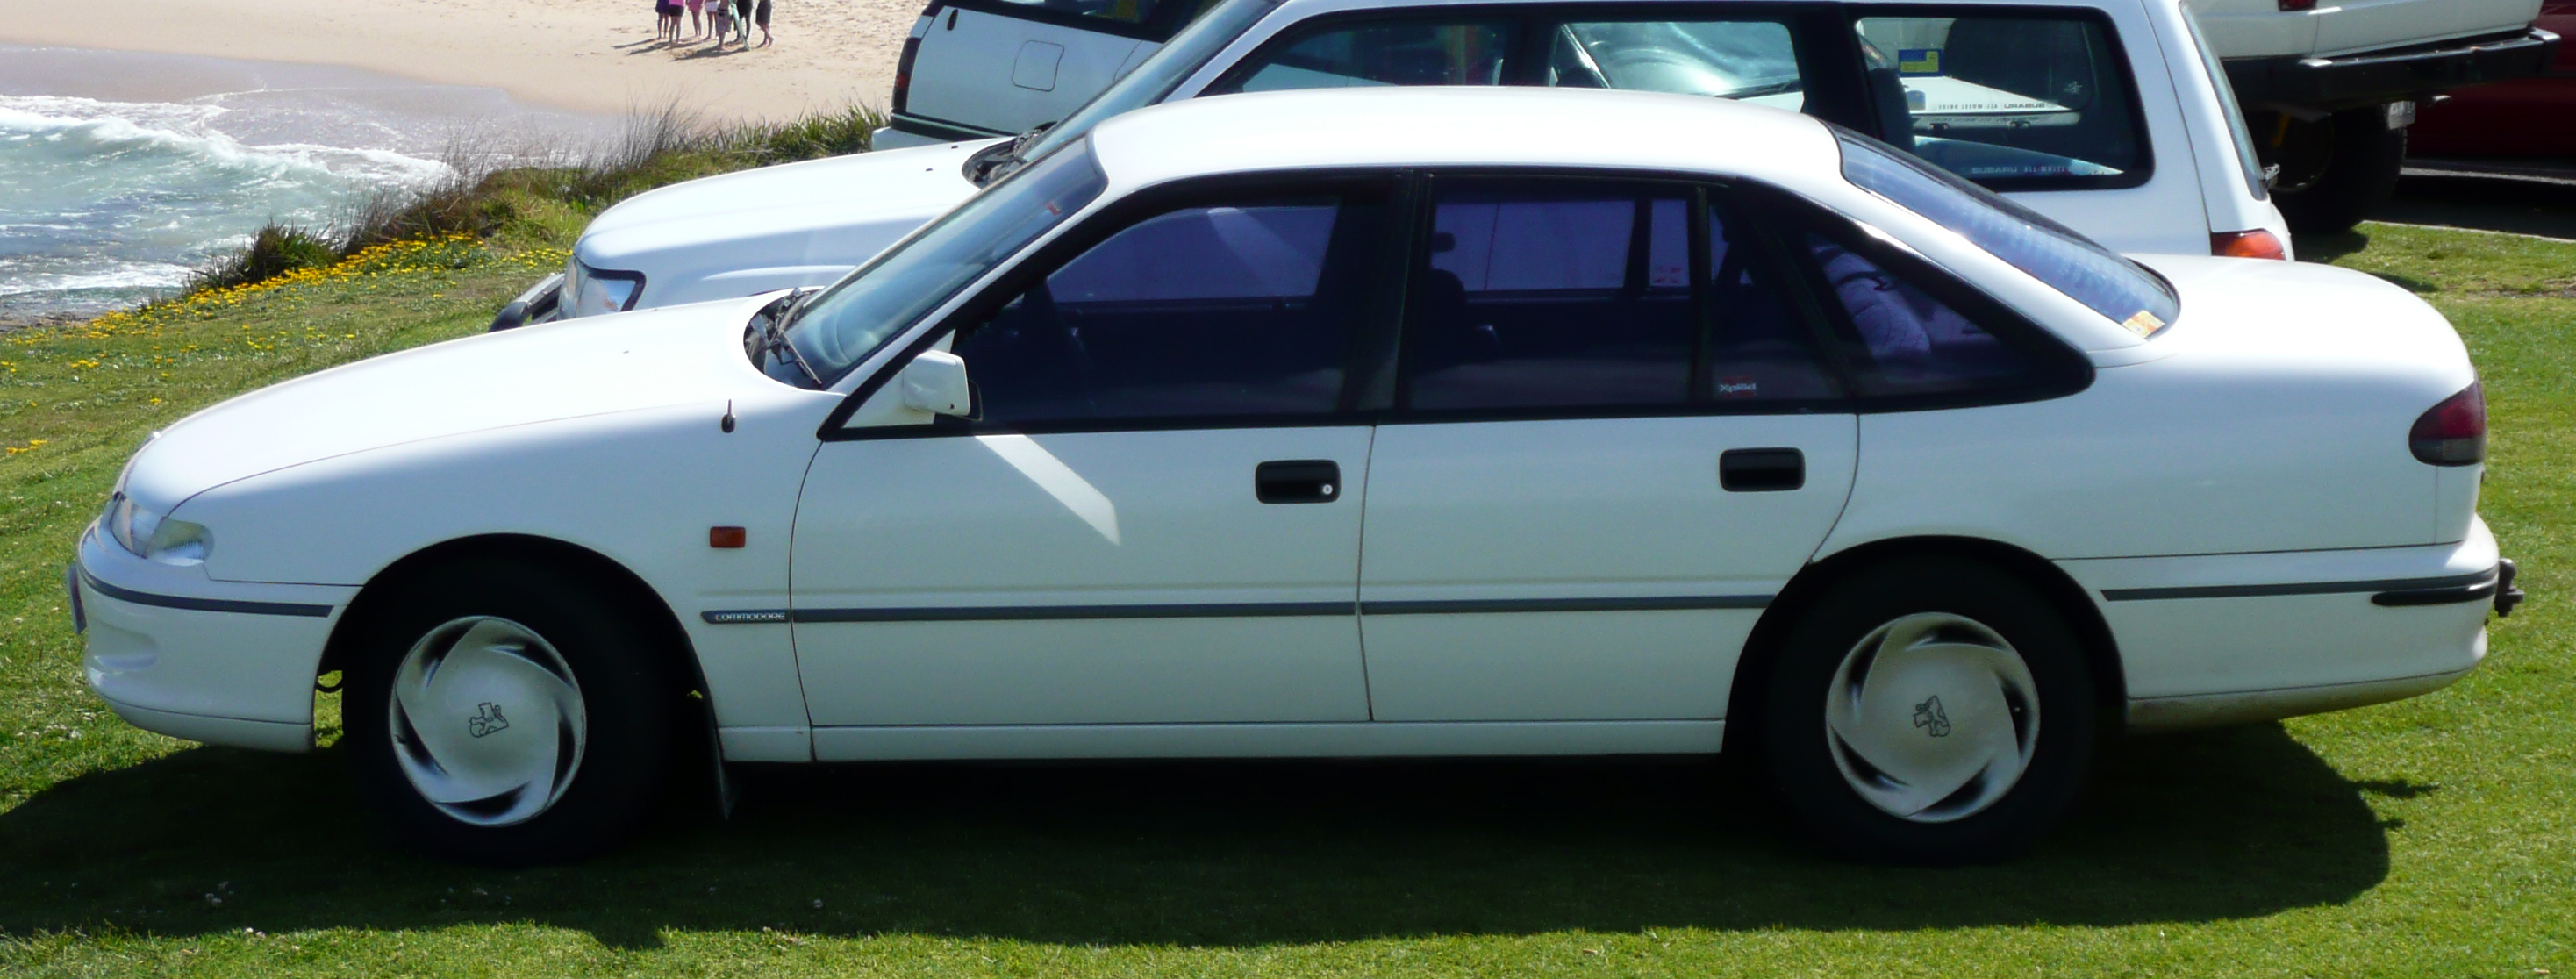 1993 Holden Commodore #10